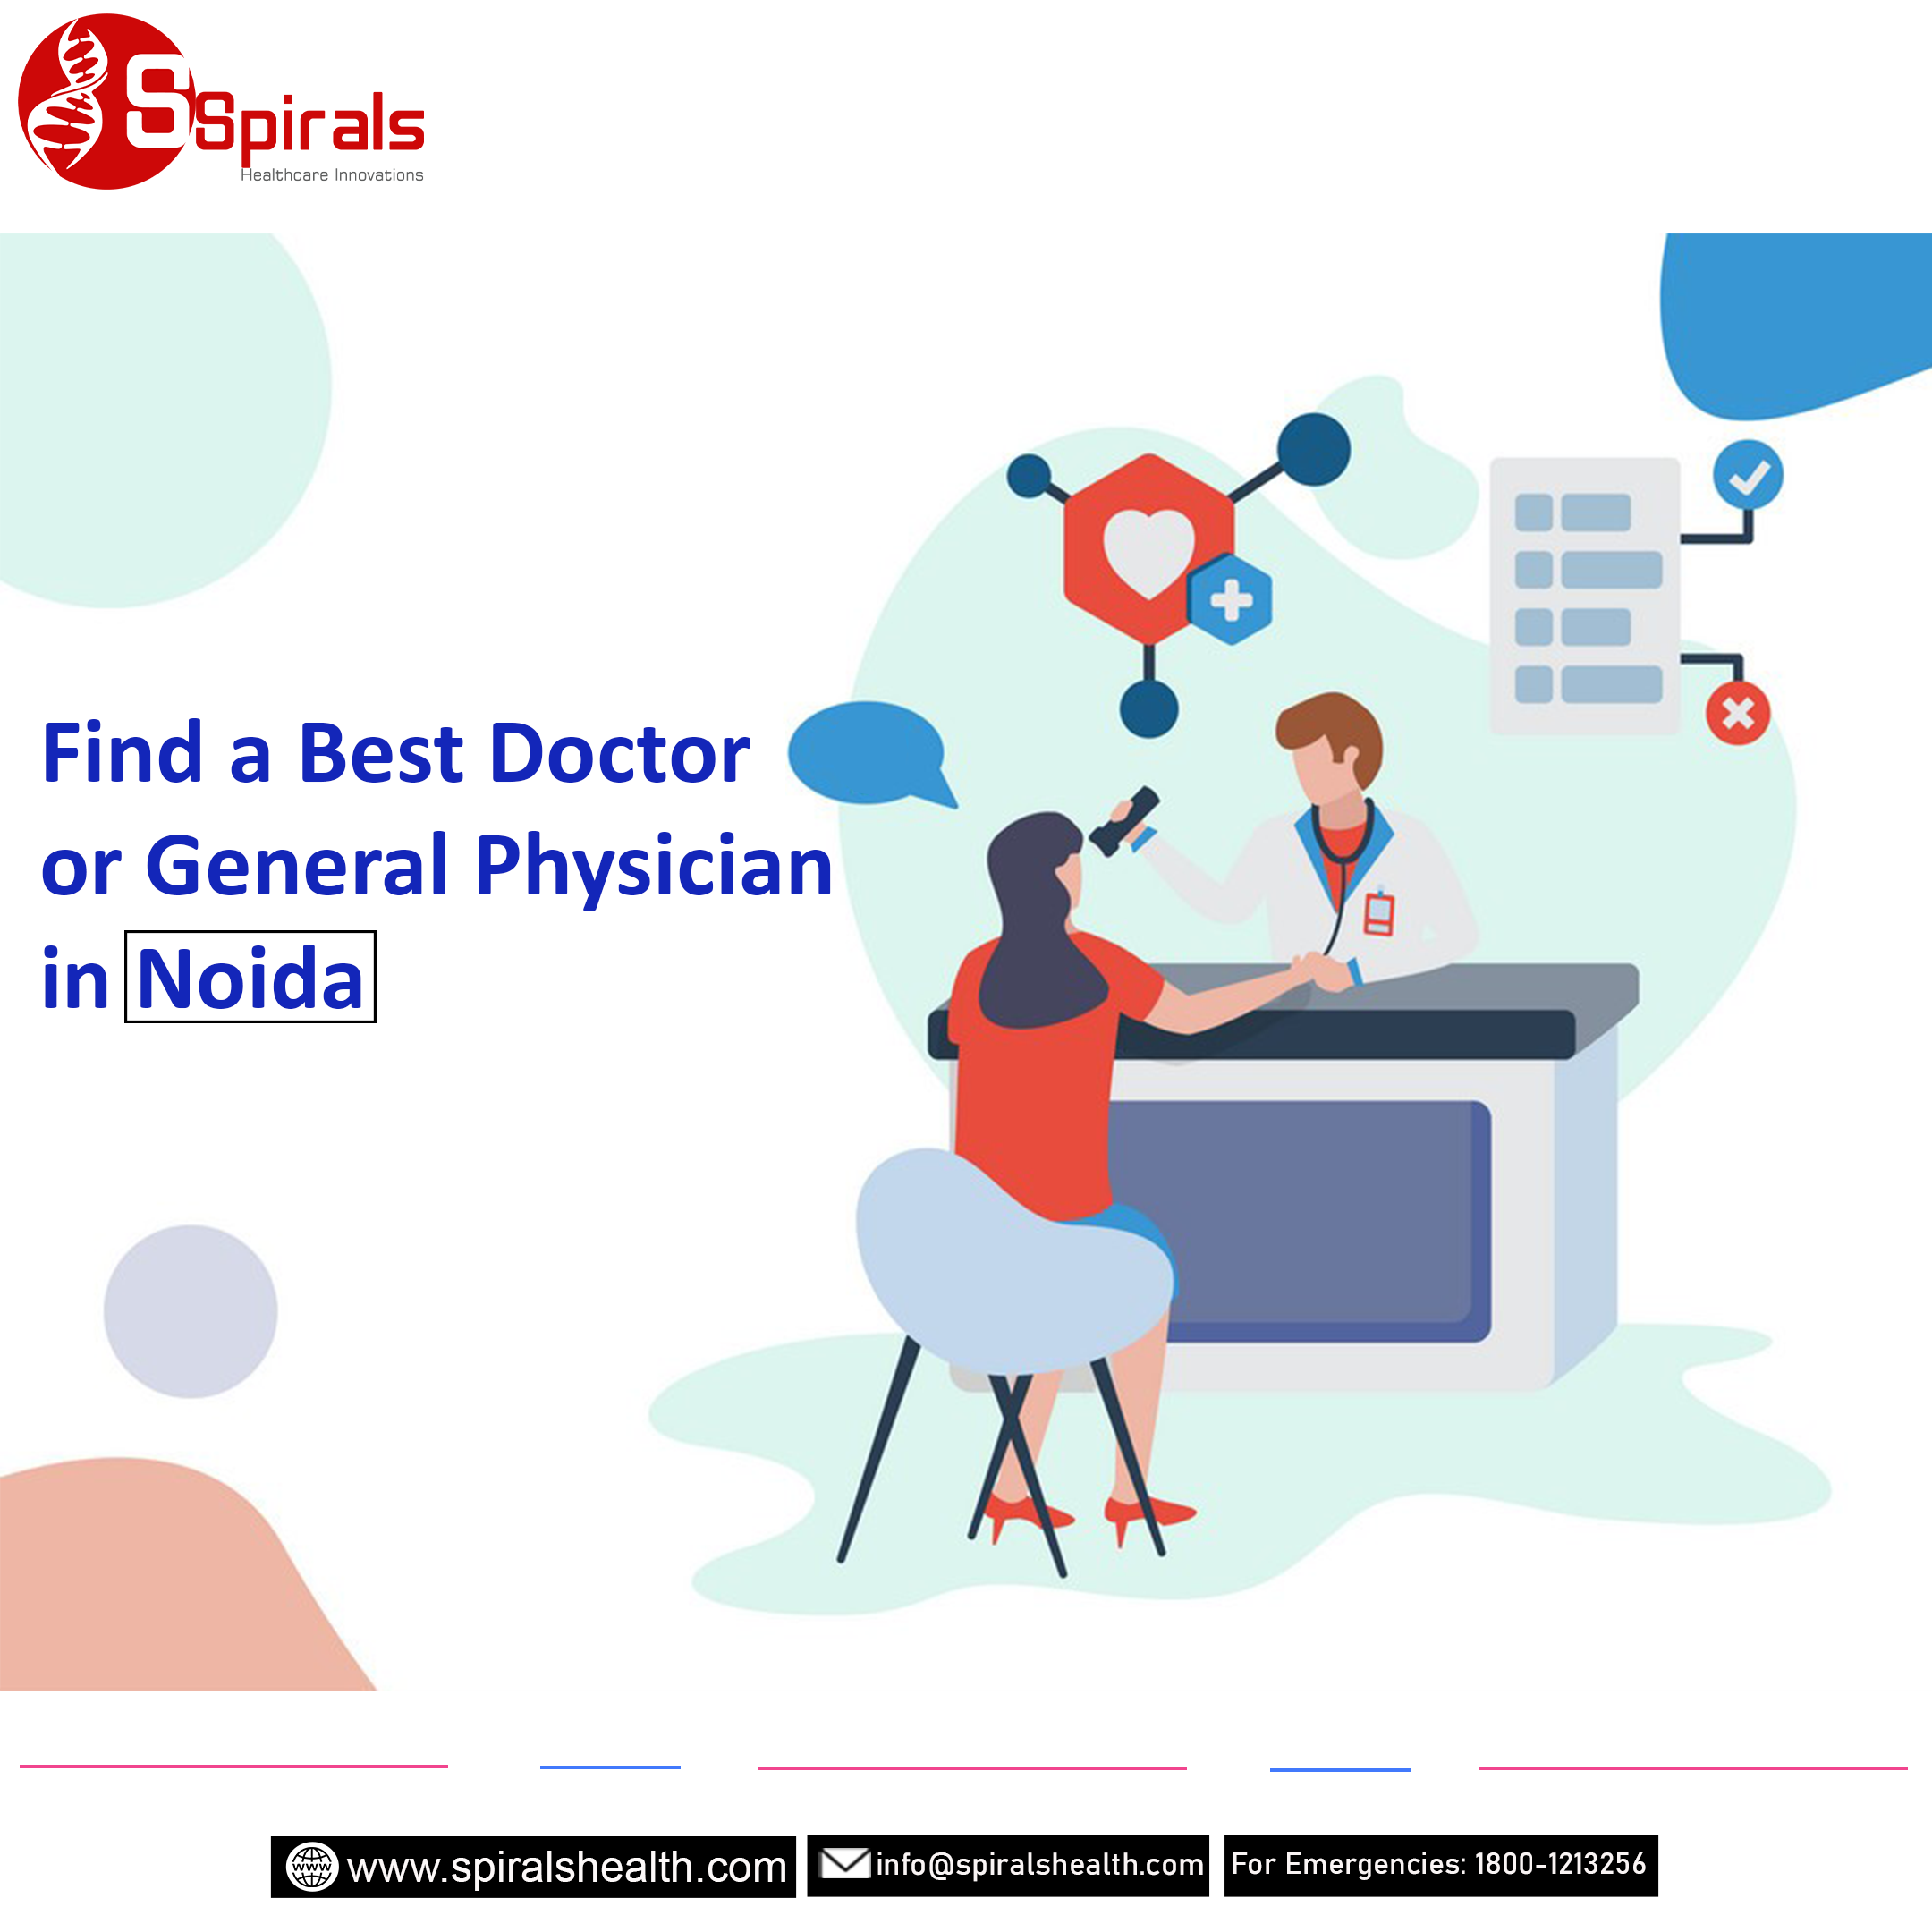 Book doctors appointment or General Physician in Noida